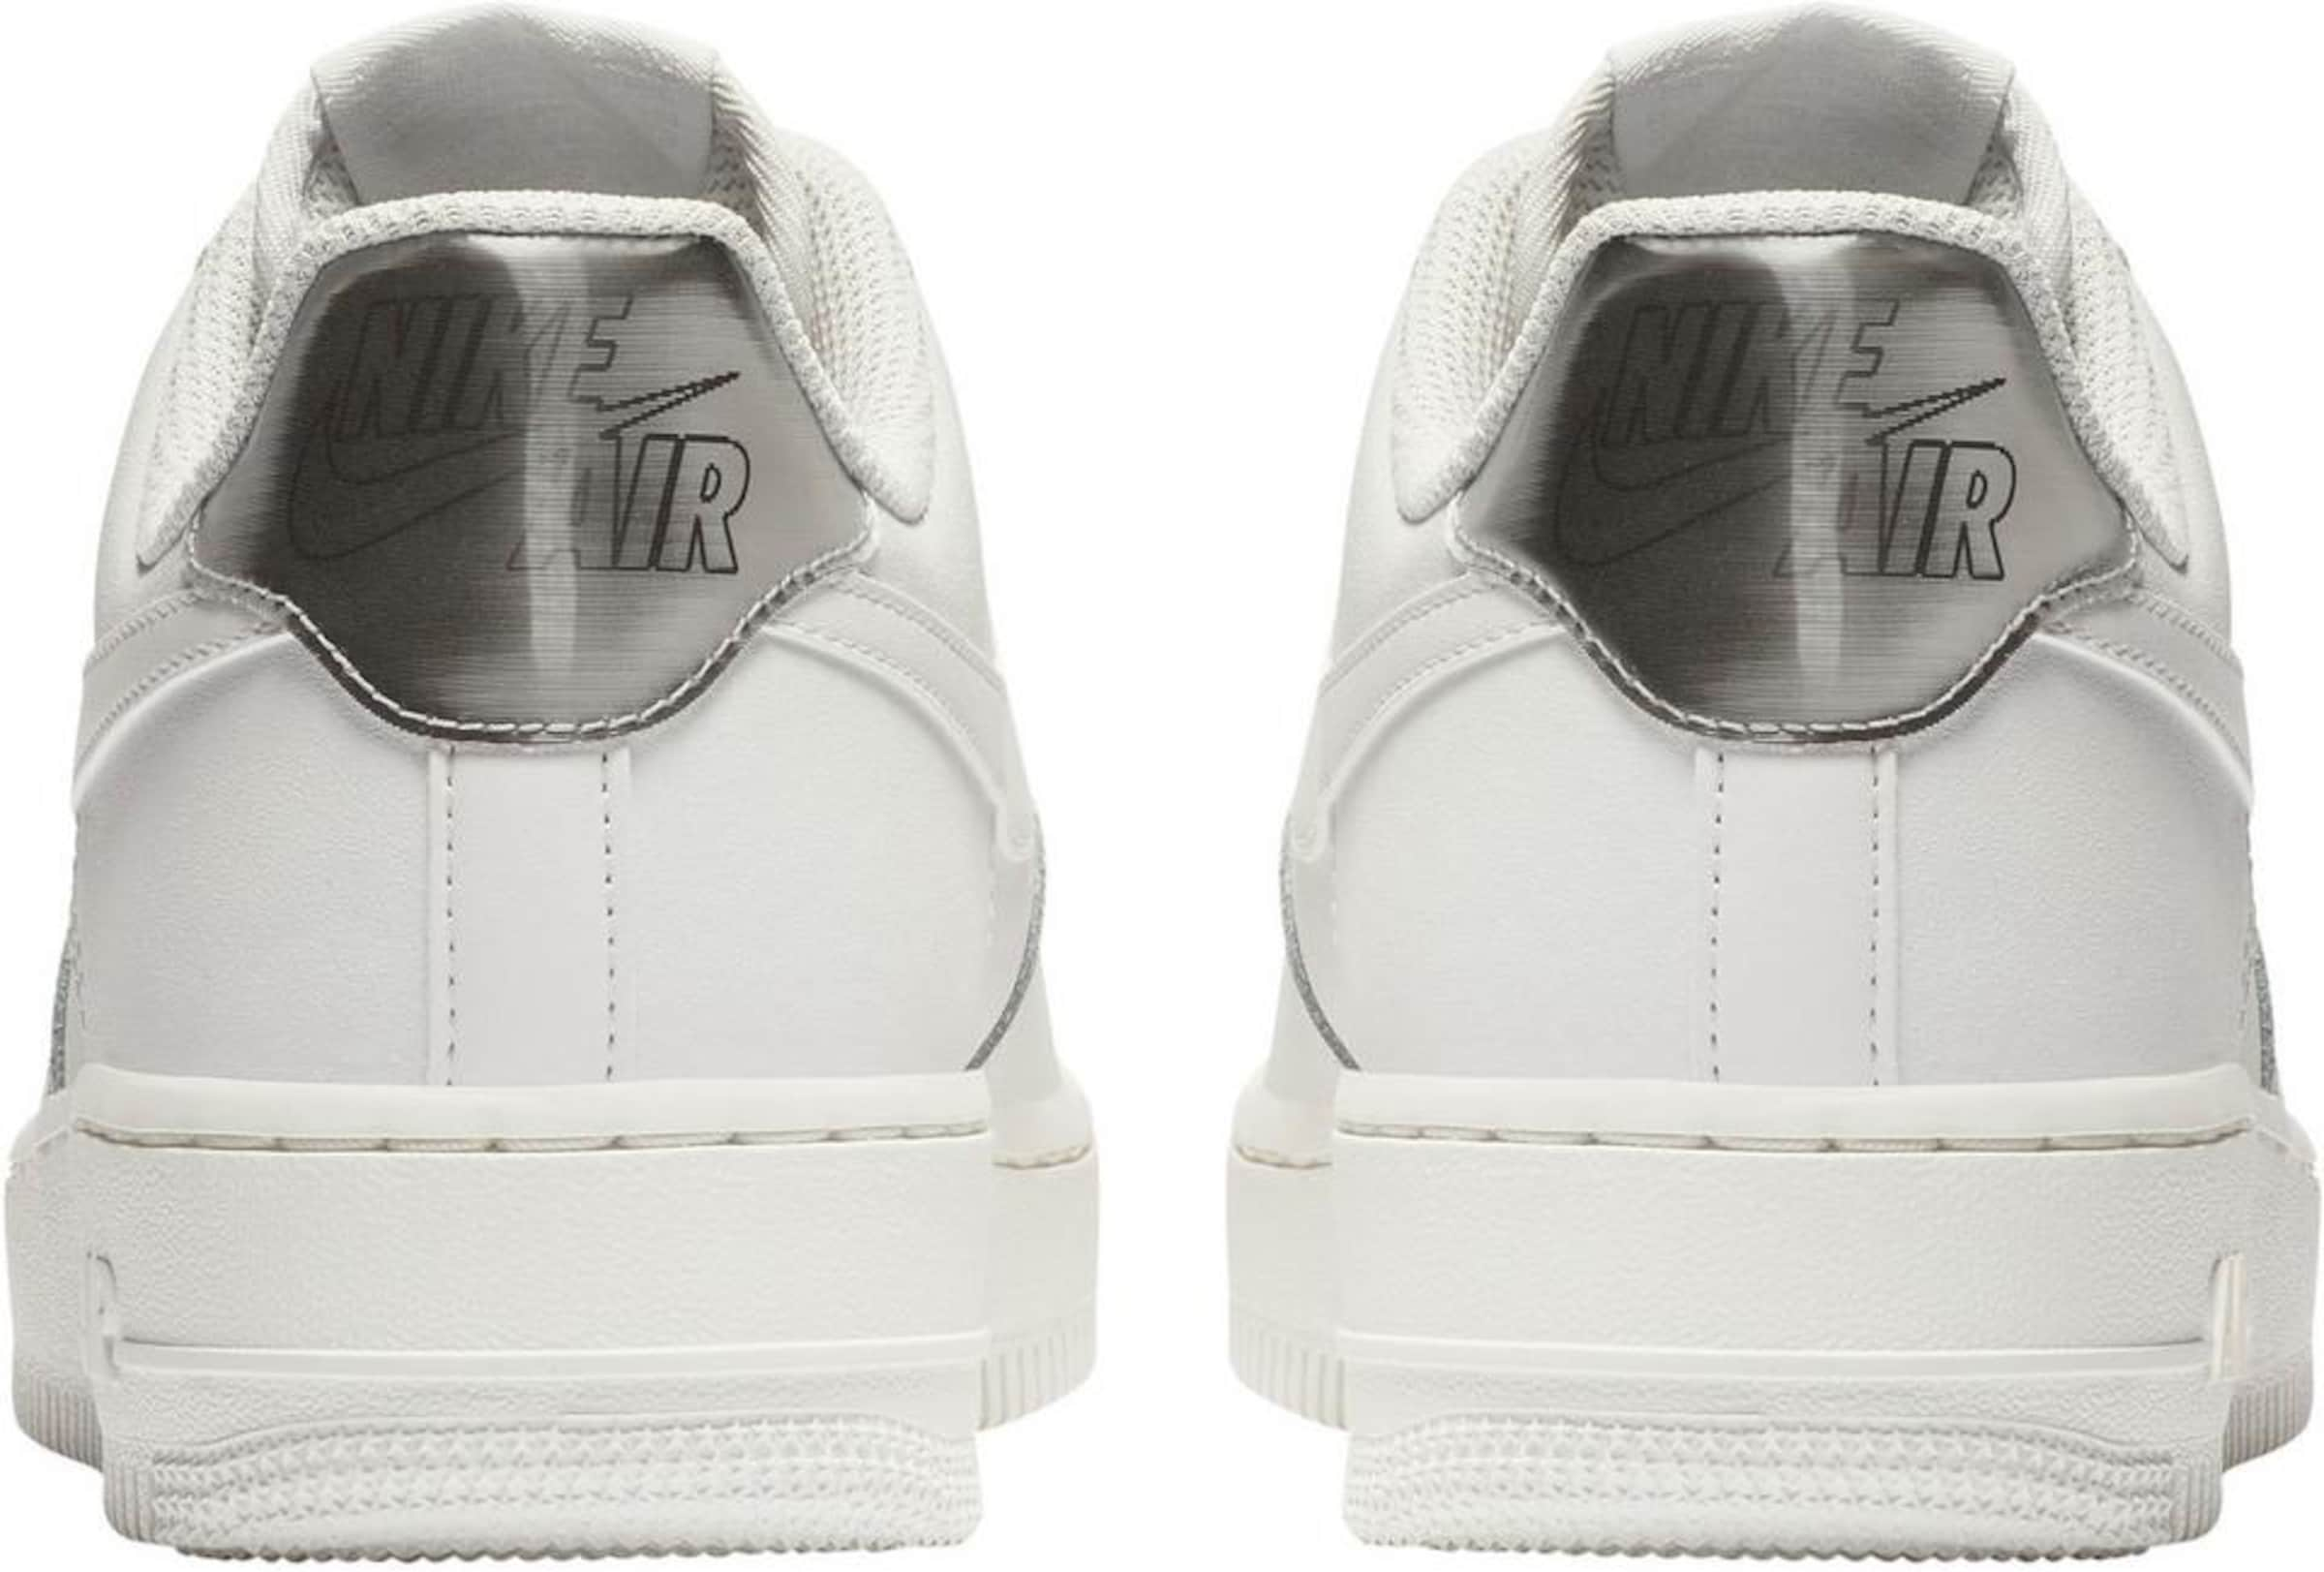 07 Air Force 1 Weiß Sportswear In Essential' 'wmns Nike